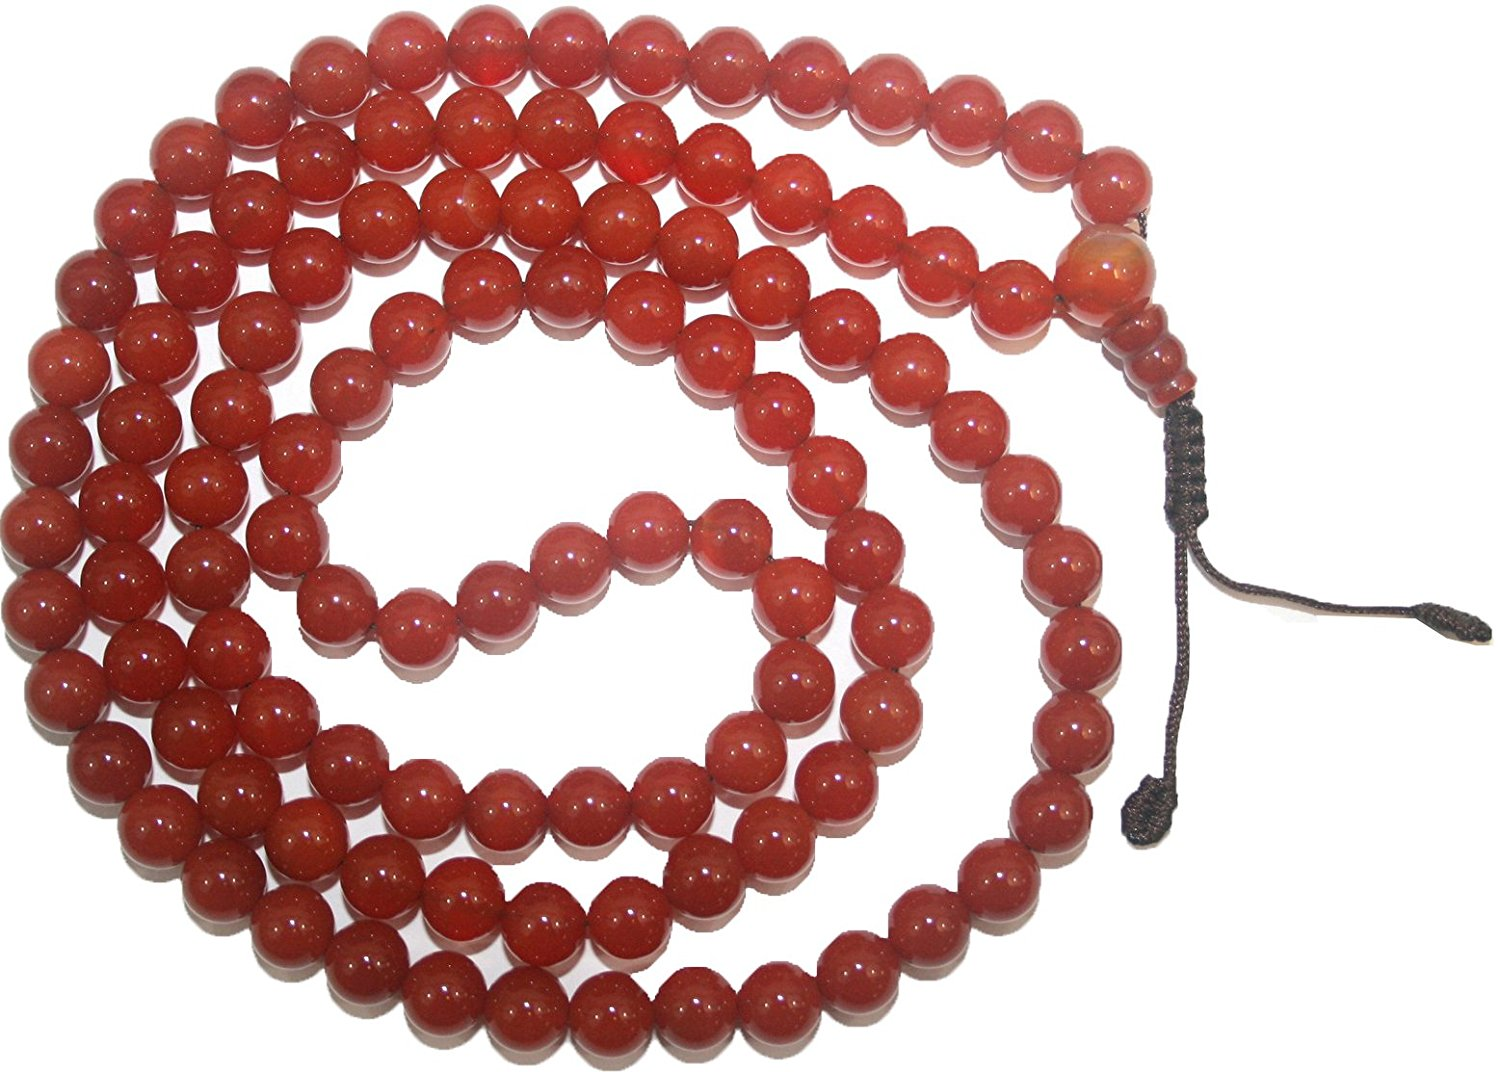 Agan Traders Original Tibetan Buddhist 108 Beads Prayer Meditation Mala - Agan Traders, Carnelian